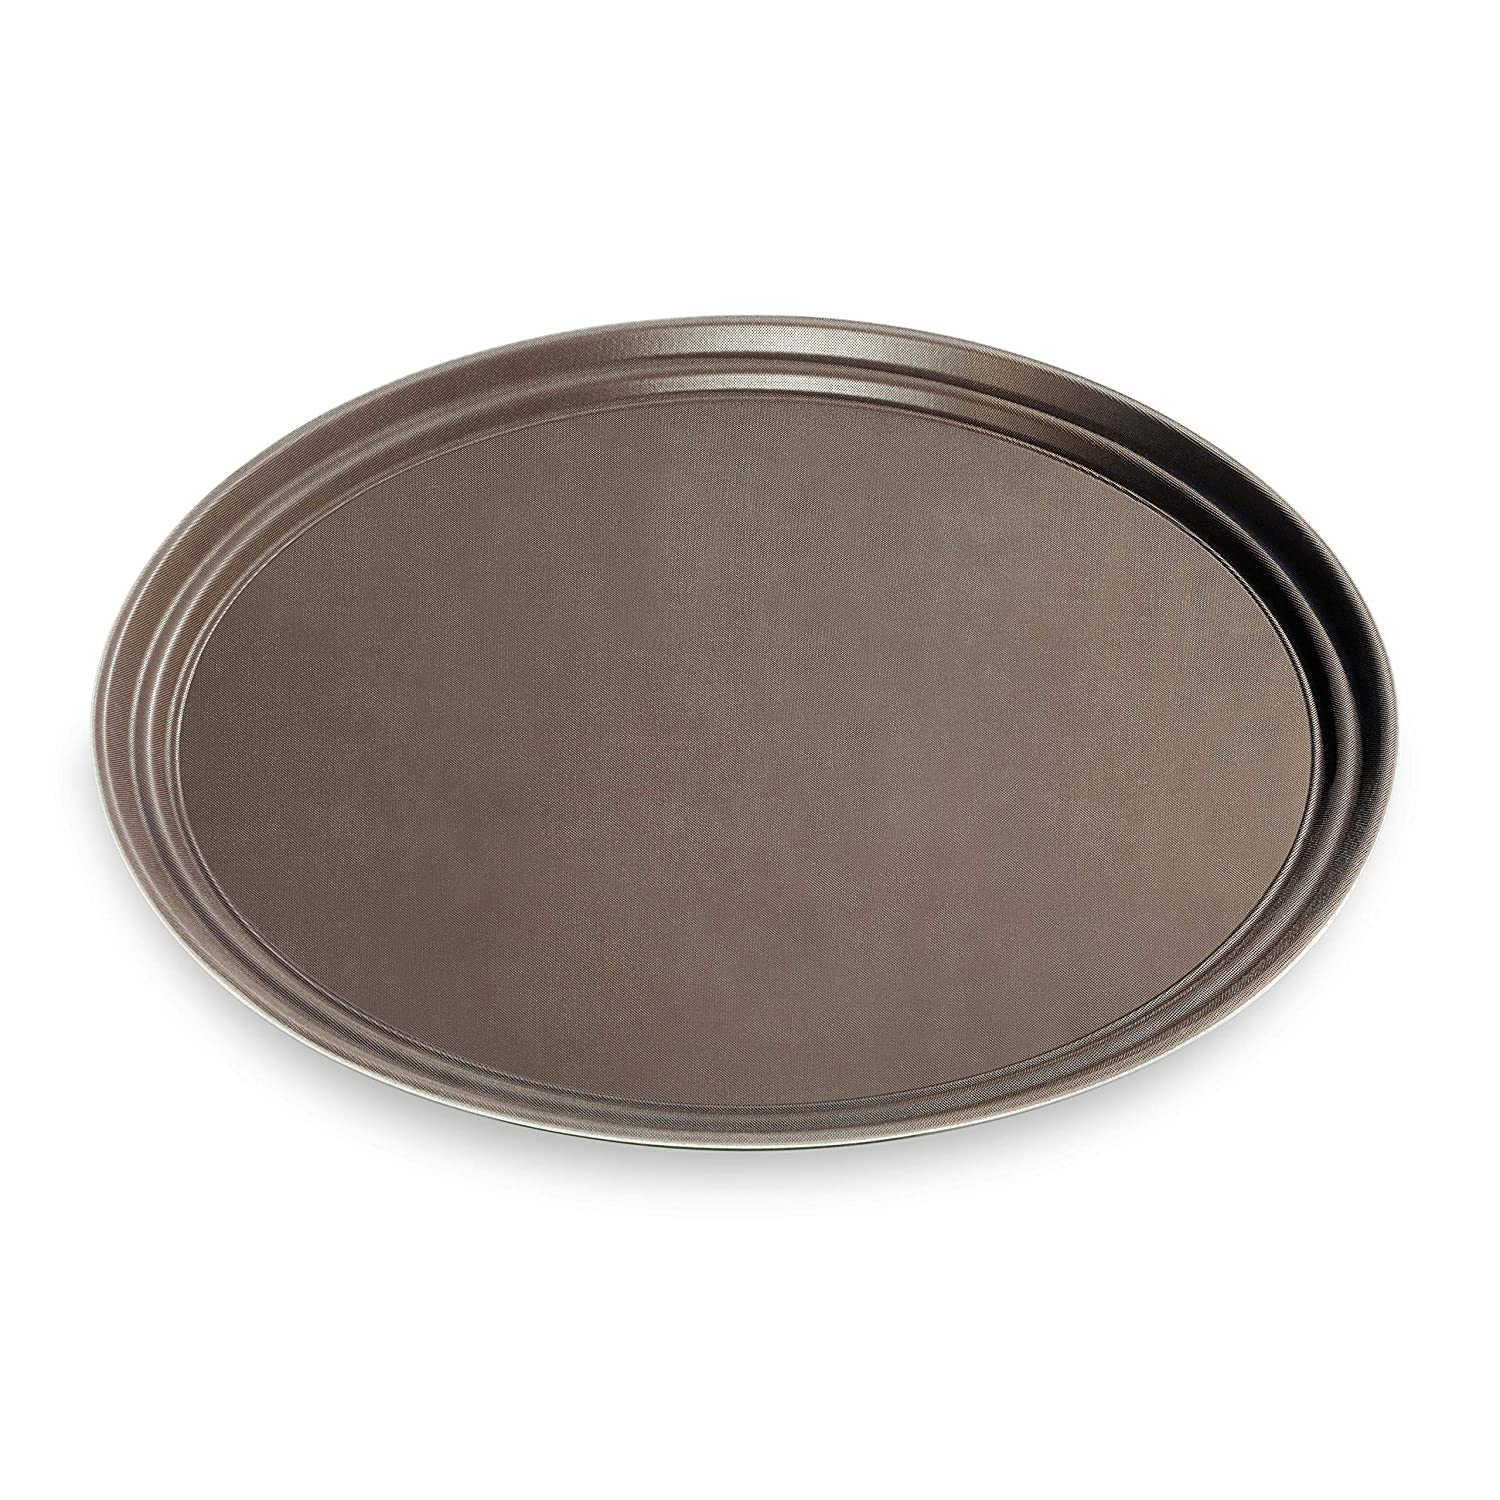 New Star NSF Approved Plastic Non-Skid Tray Oval 25545 22-Inch by 27-Inch Brown New Star Foodservice Inc